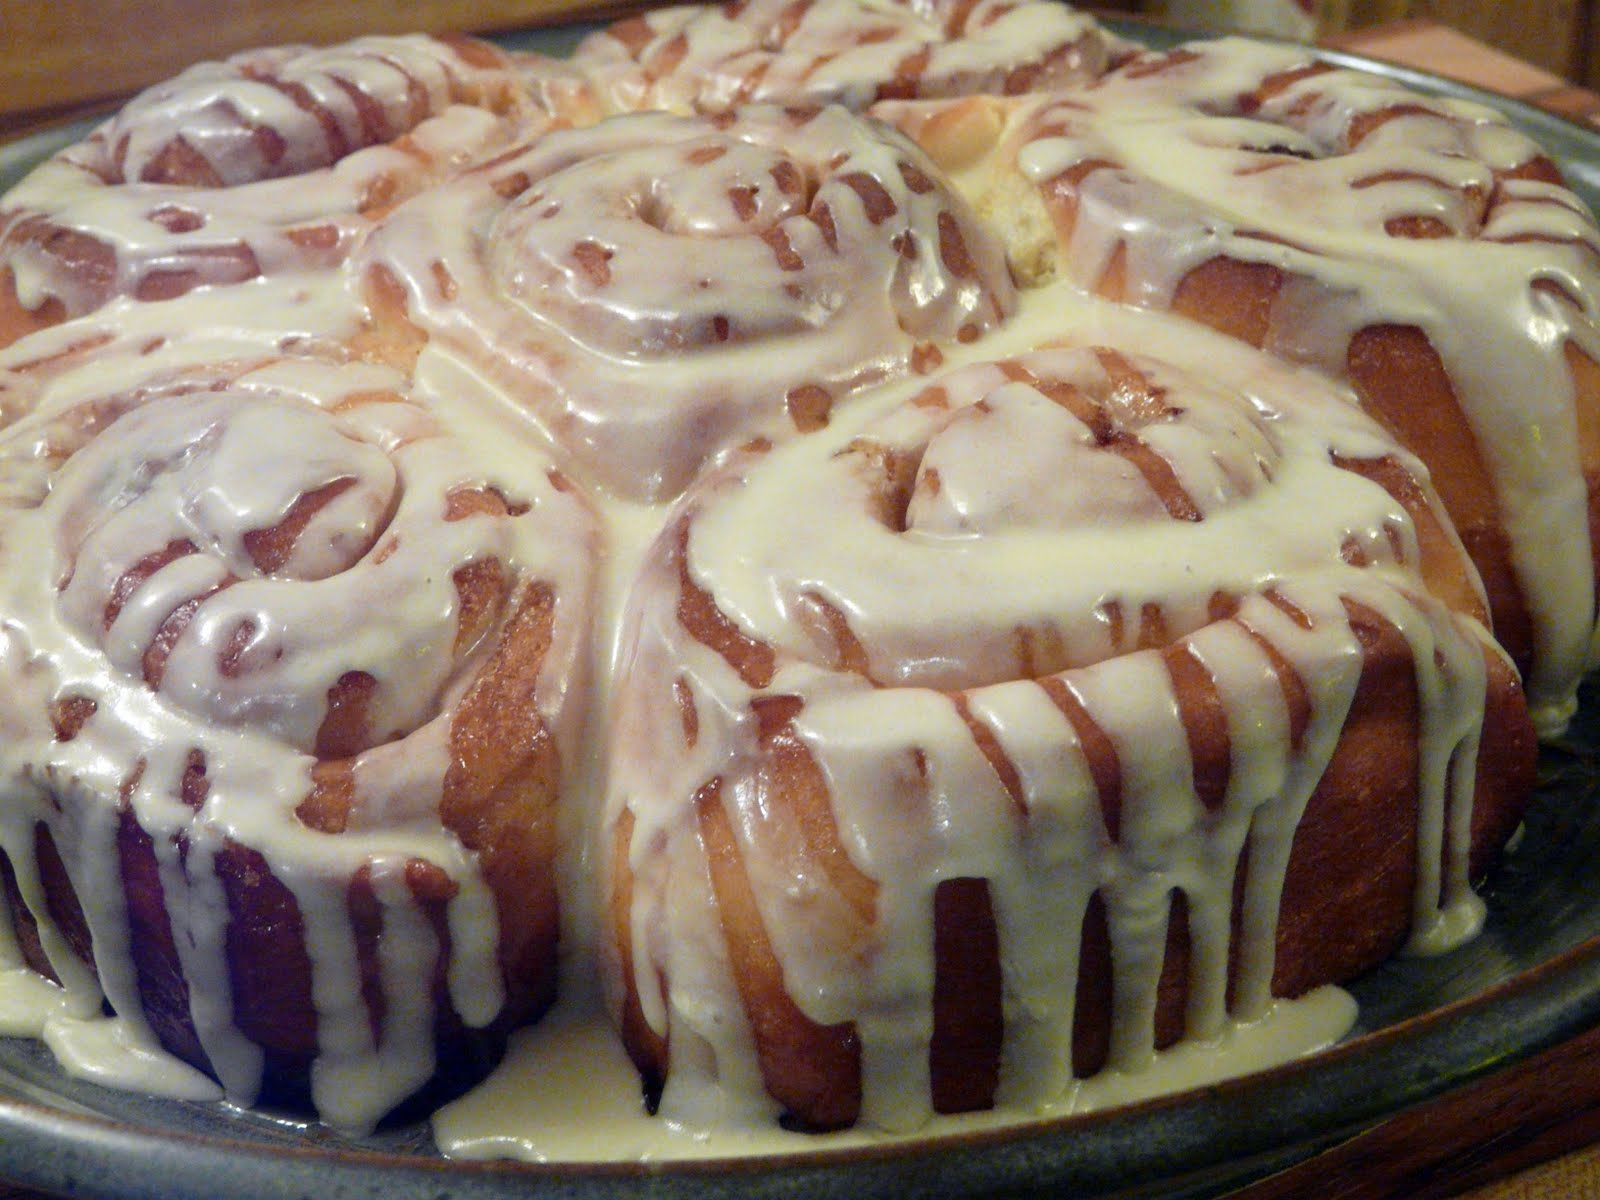 Cinnamon Rolls with White Chocolate Glaze